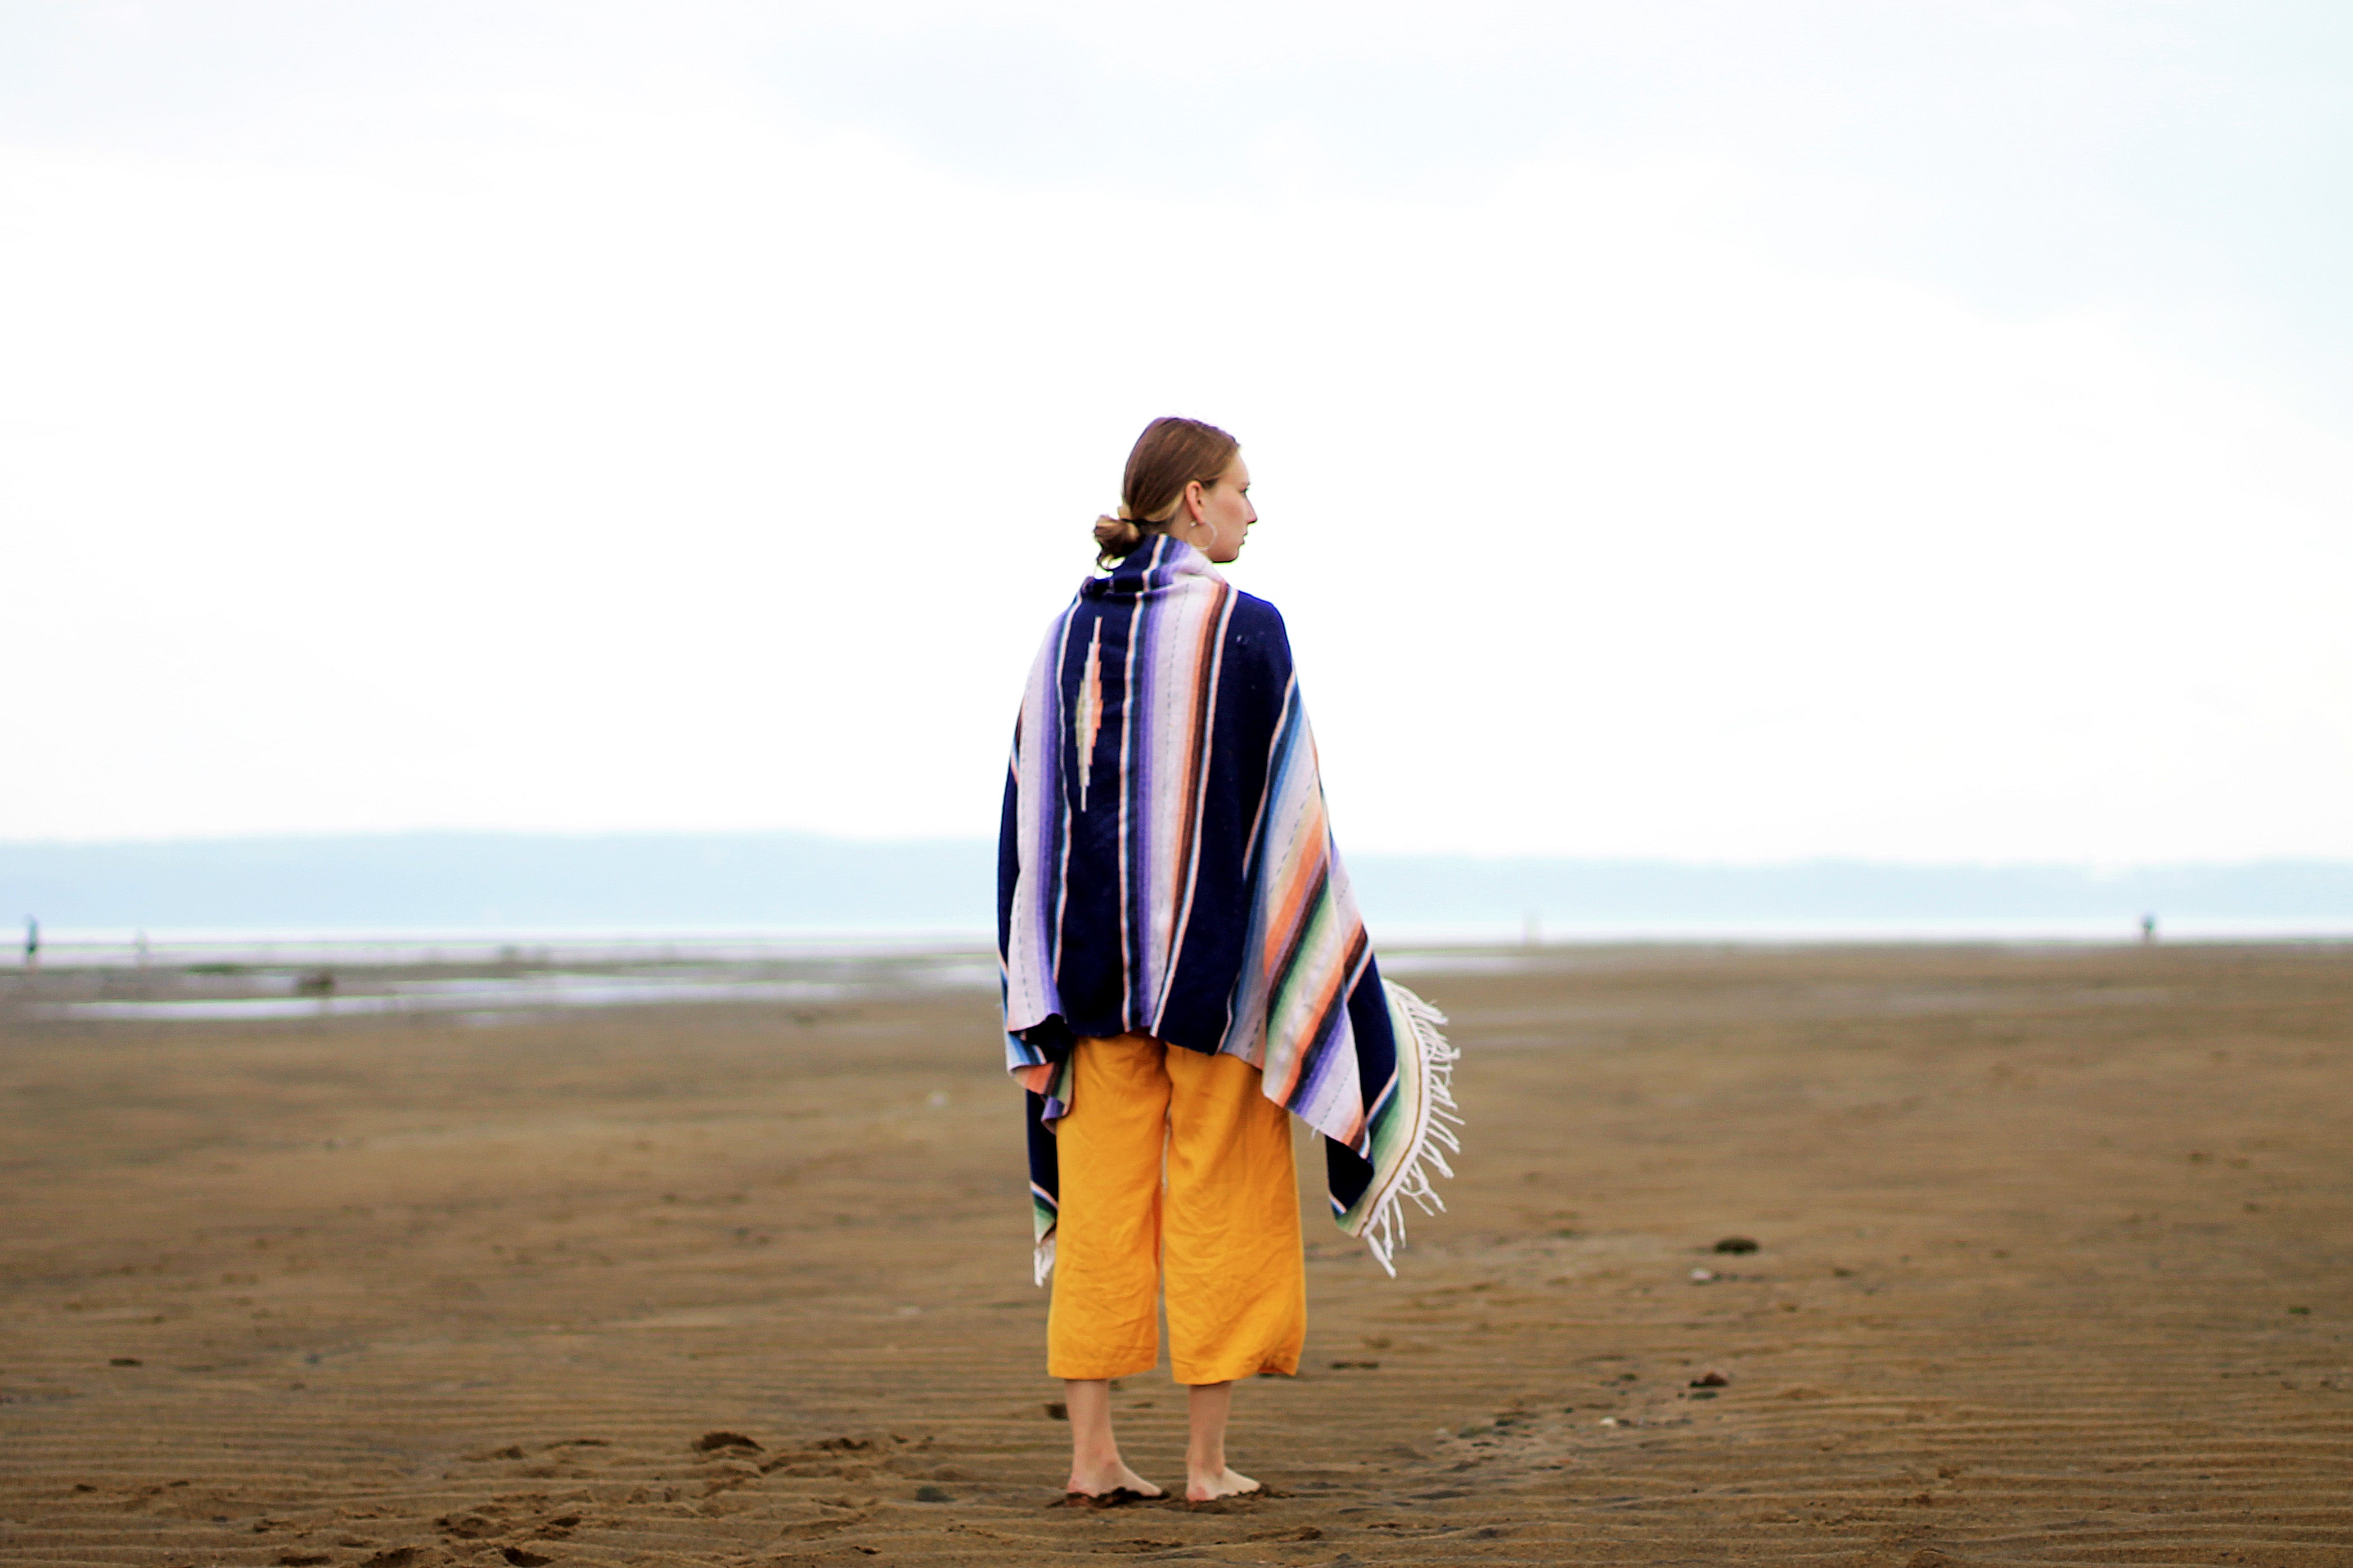 woman wearing black and white striped shoal standing on brown sand dunes